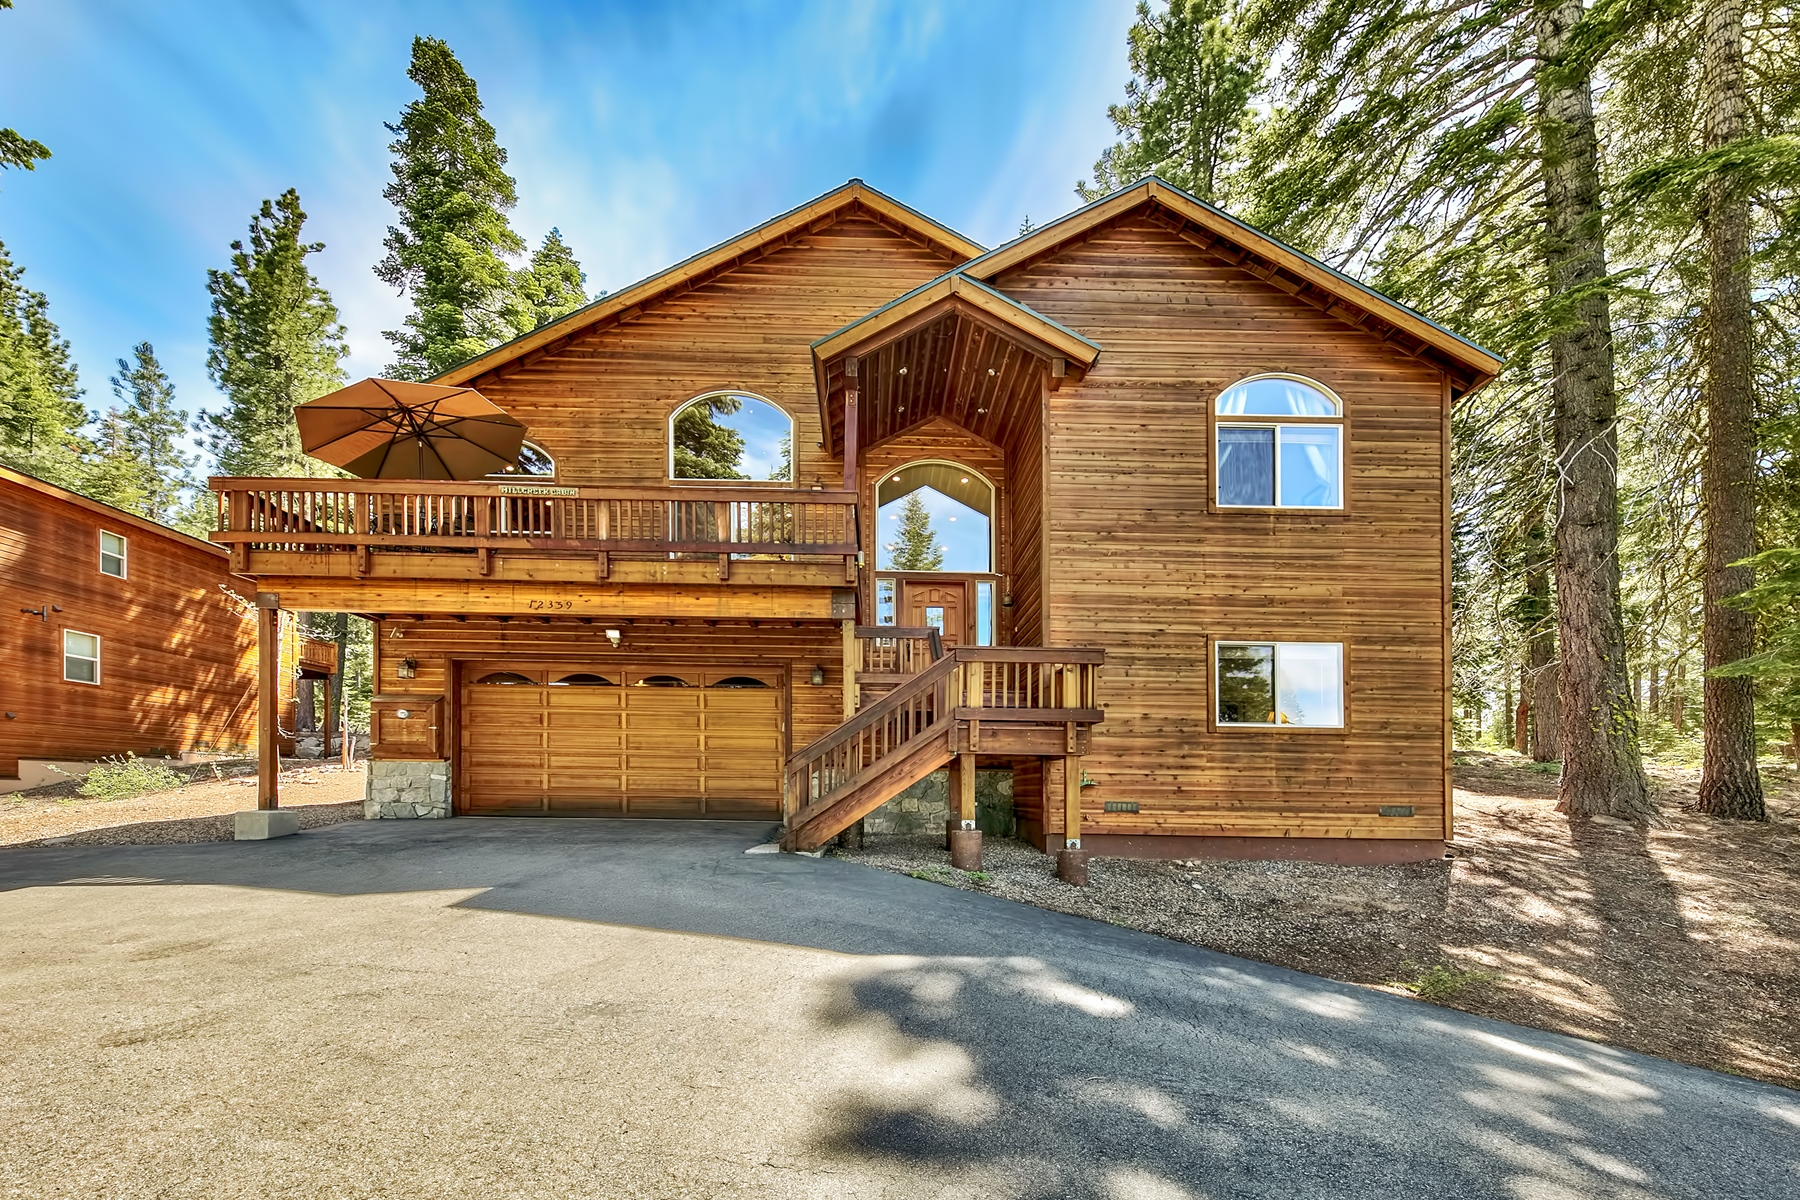 Single Family Homes for Active at 12359 Muhlebach Way, Truckee, CA 96161 12359 Muhlebach Way Truckee, California 96161 United States